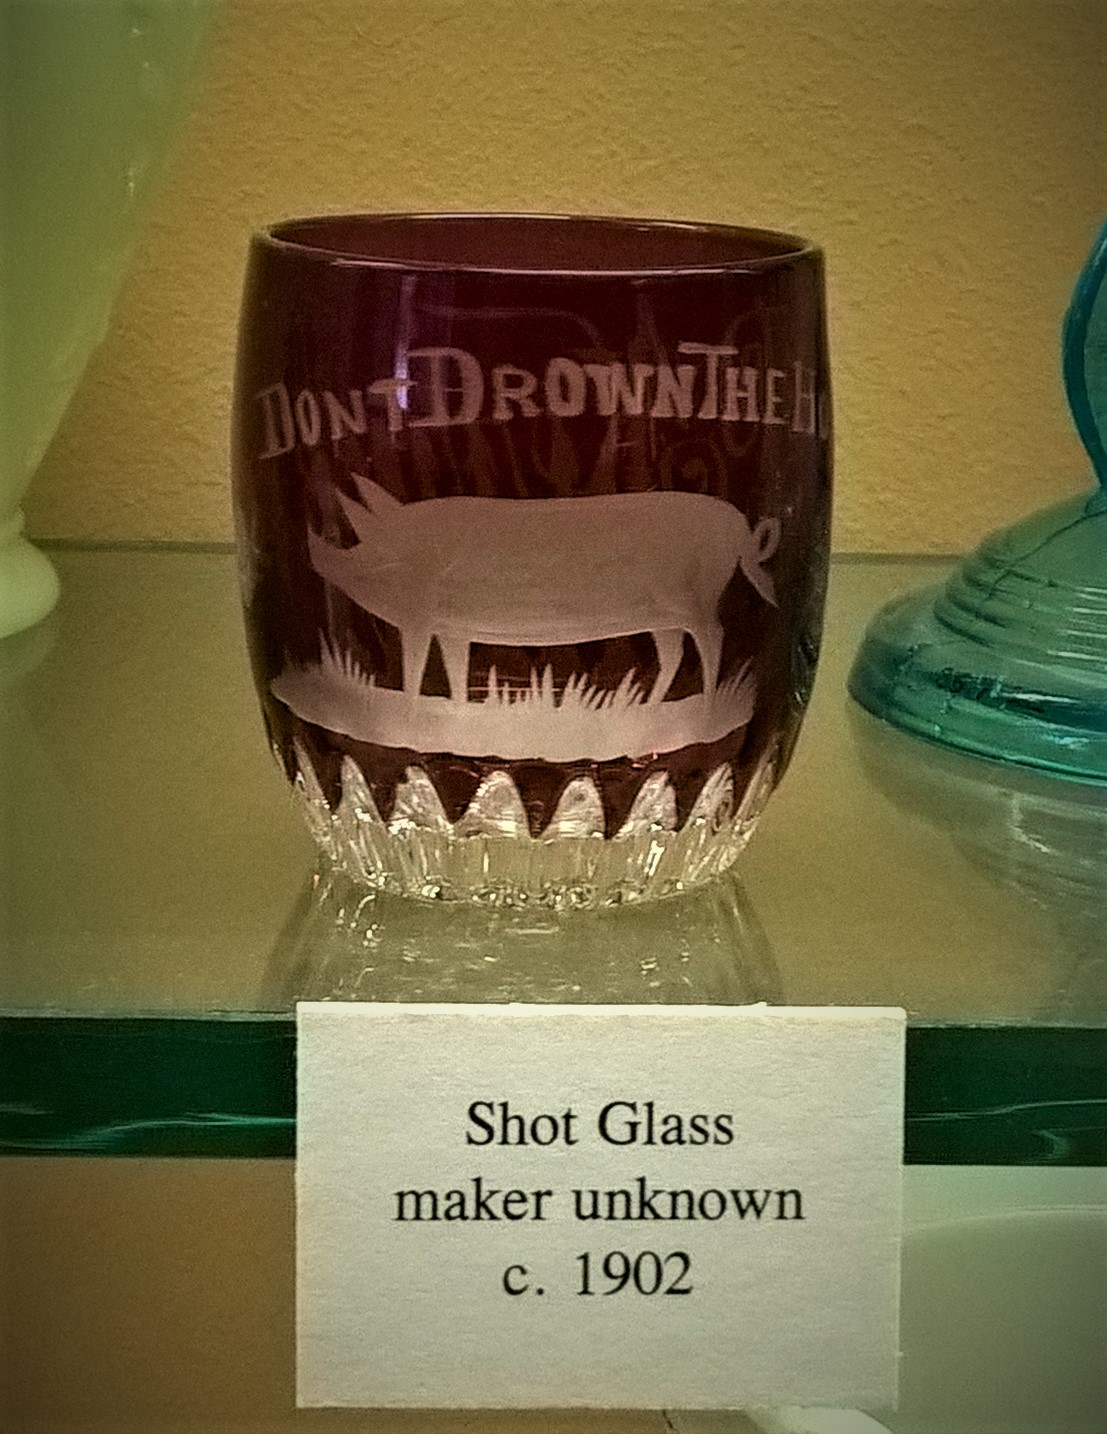 'Don't Drown the Hog' etched overlay cup, from the collection of the Museum of American Glass